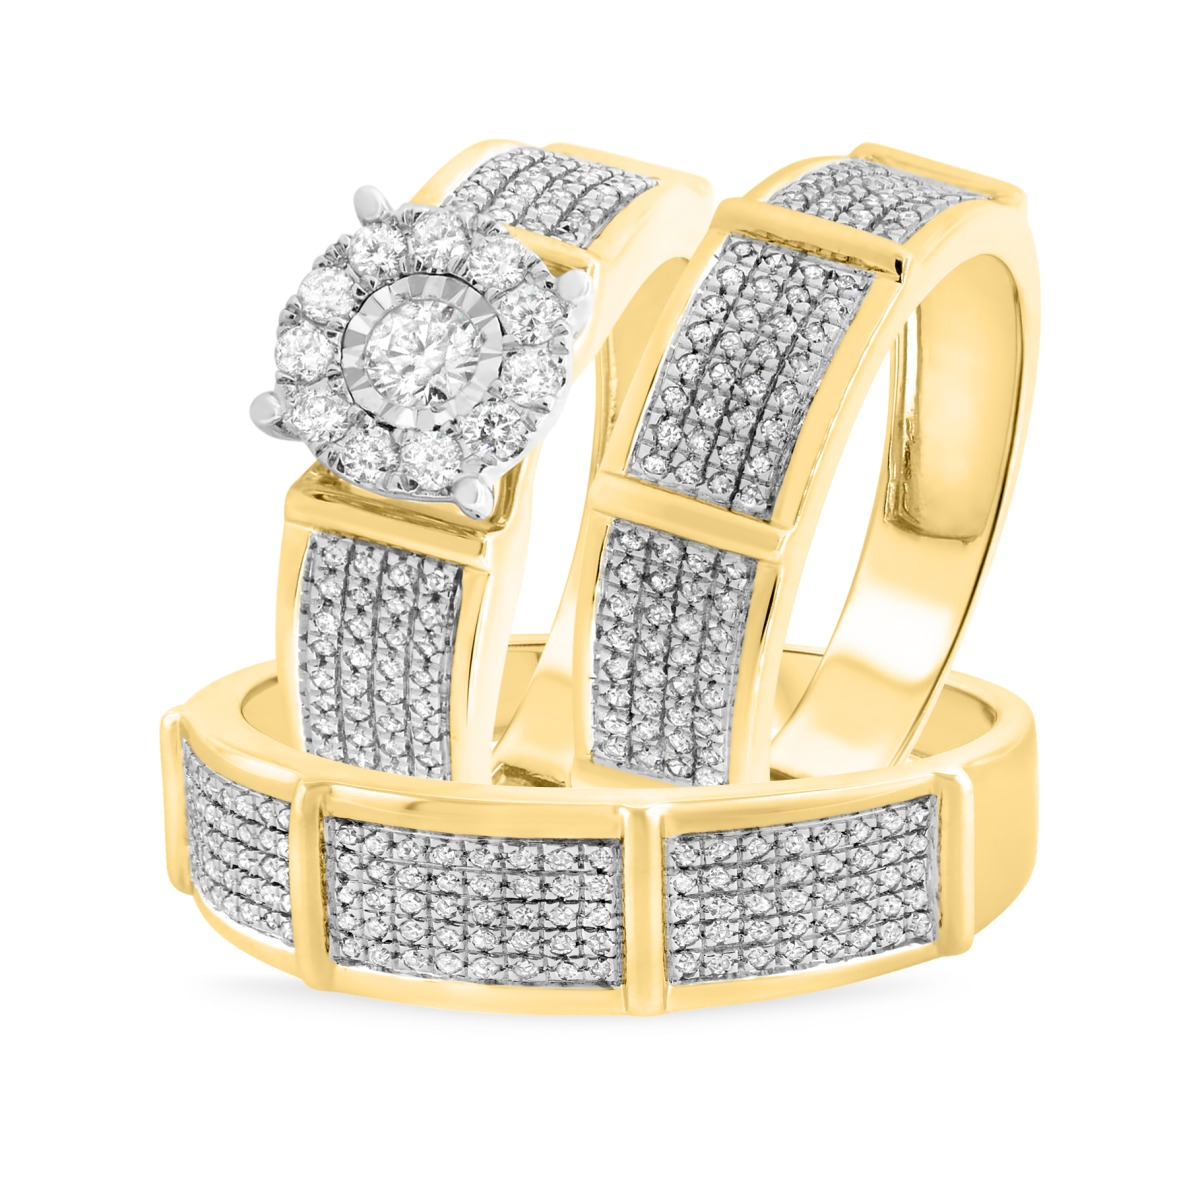 1 Carat T.W. Diamond Trio Matching Wedding Ring Set 10K Yellow Gold